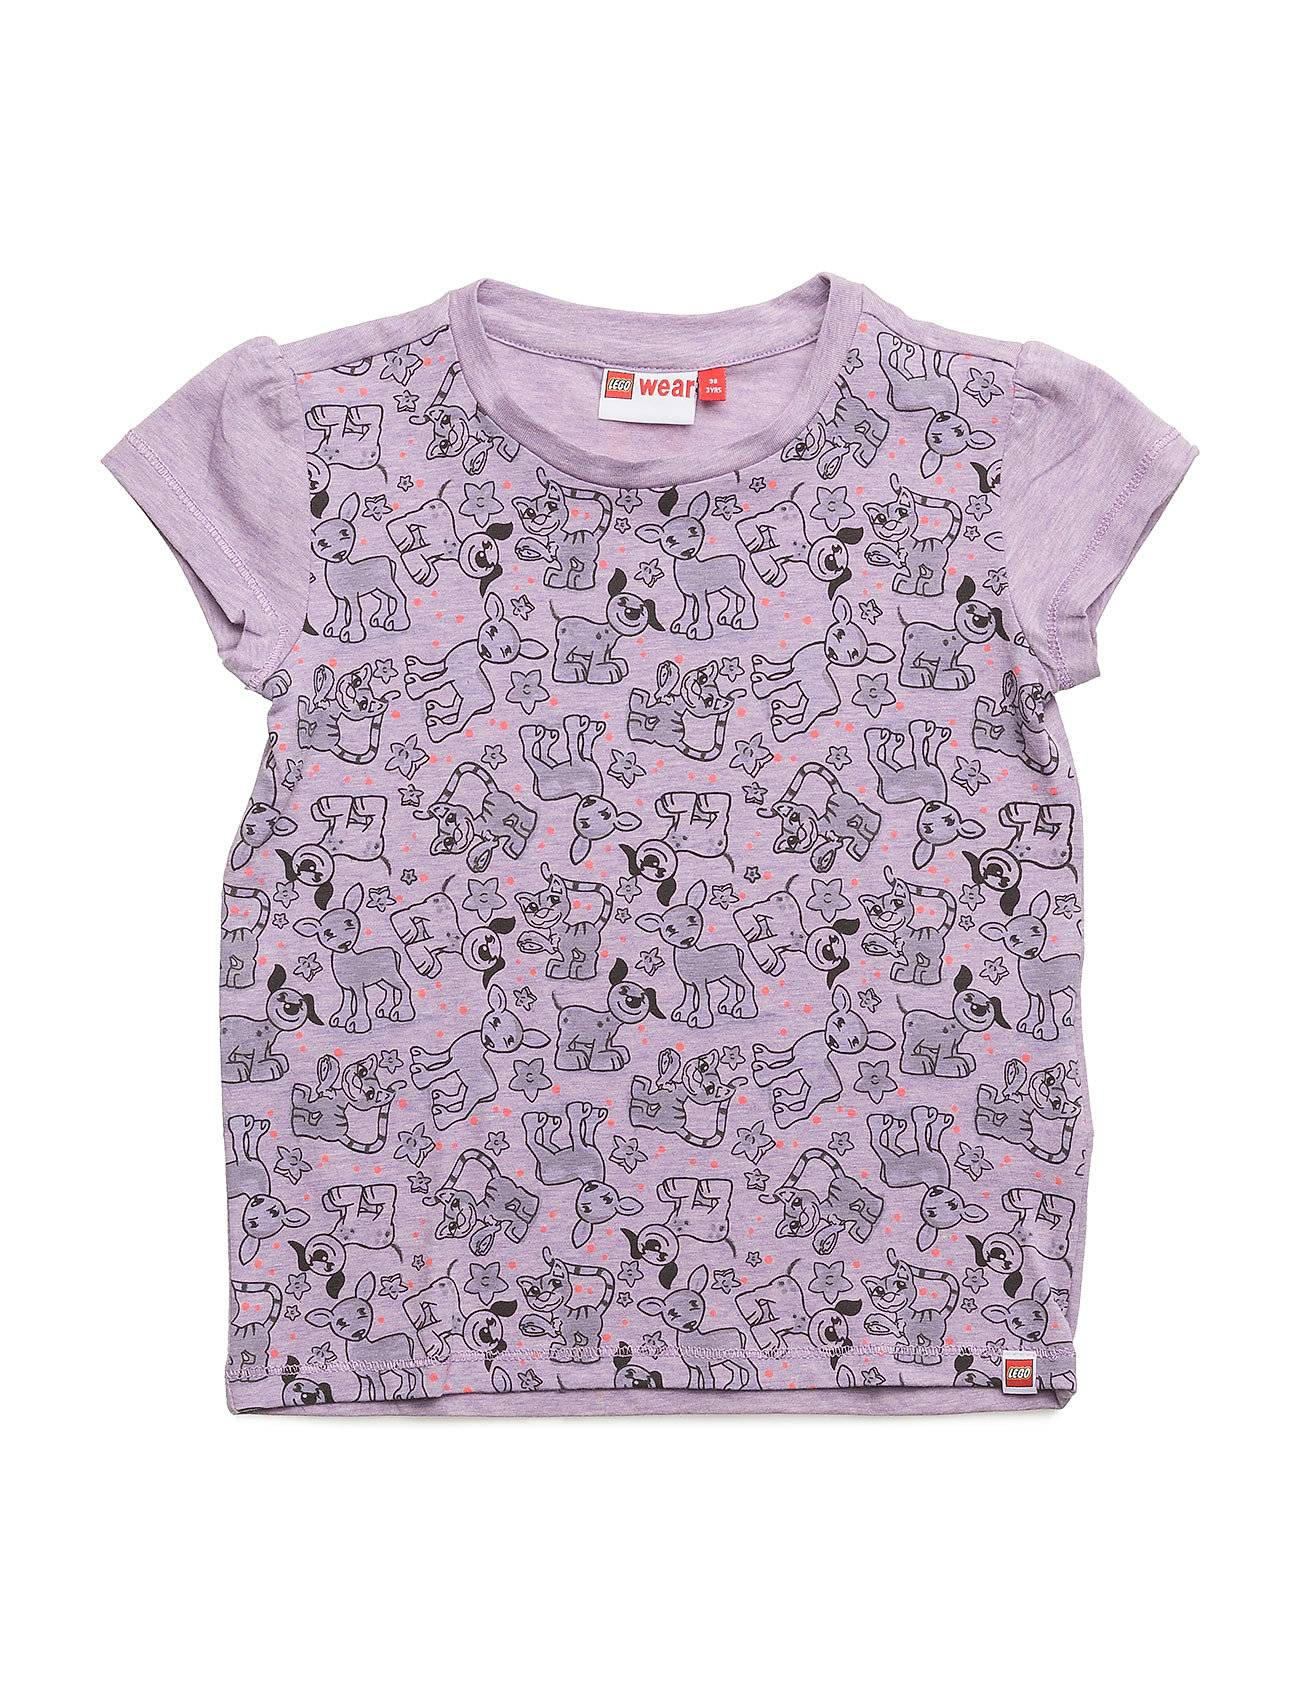 Lego Thea 104 - T-Shirt S/S